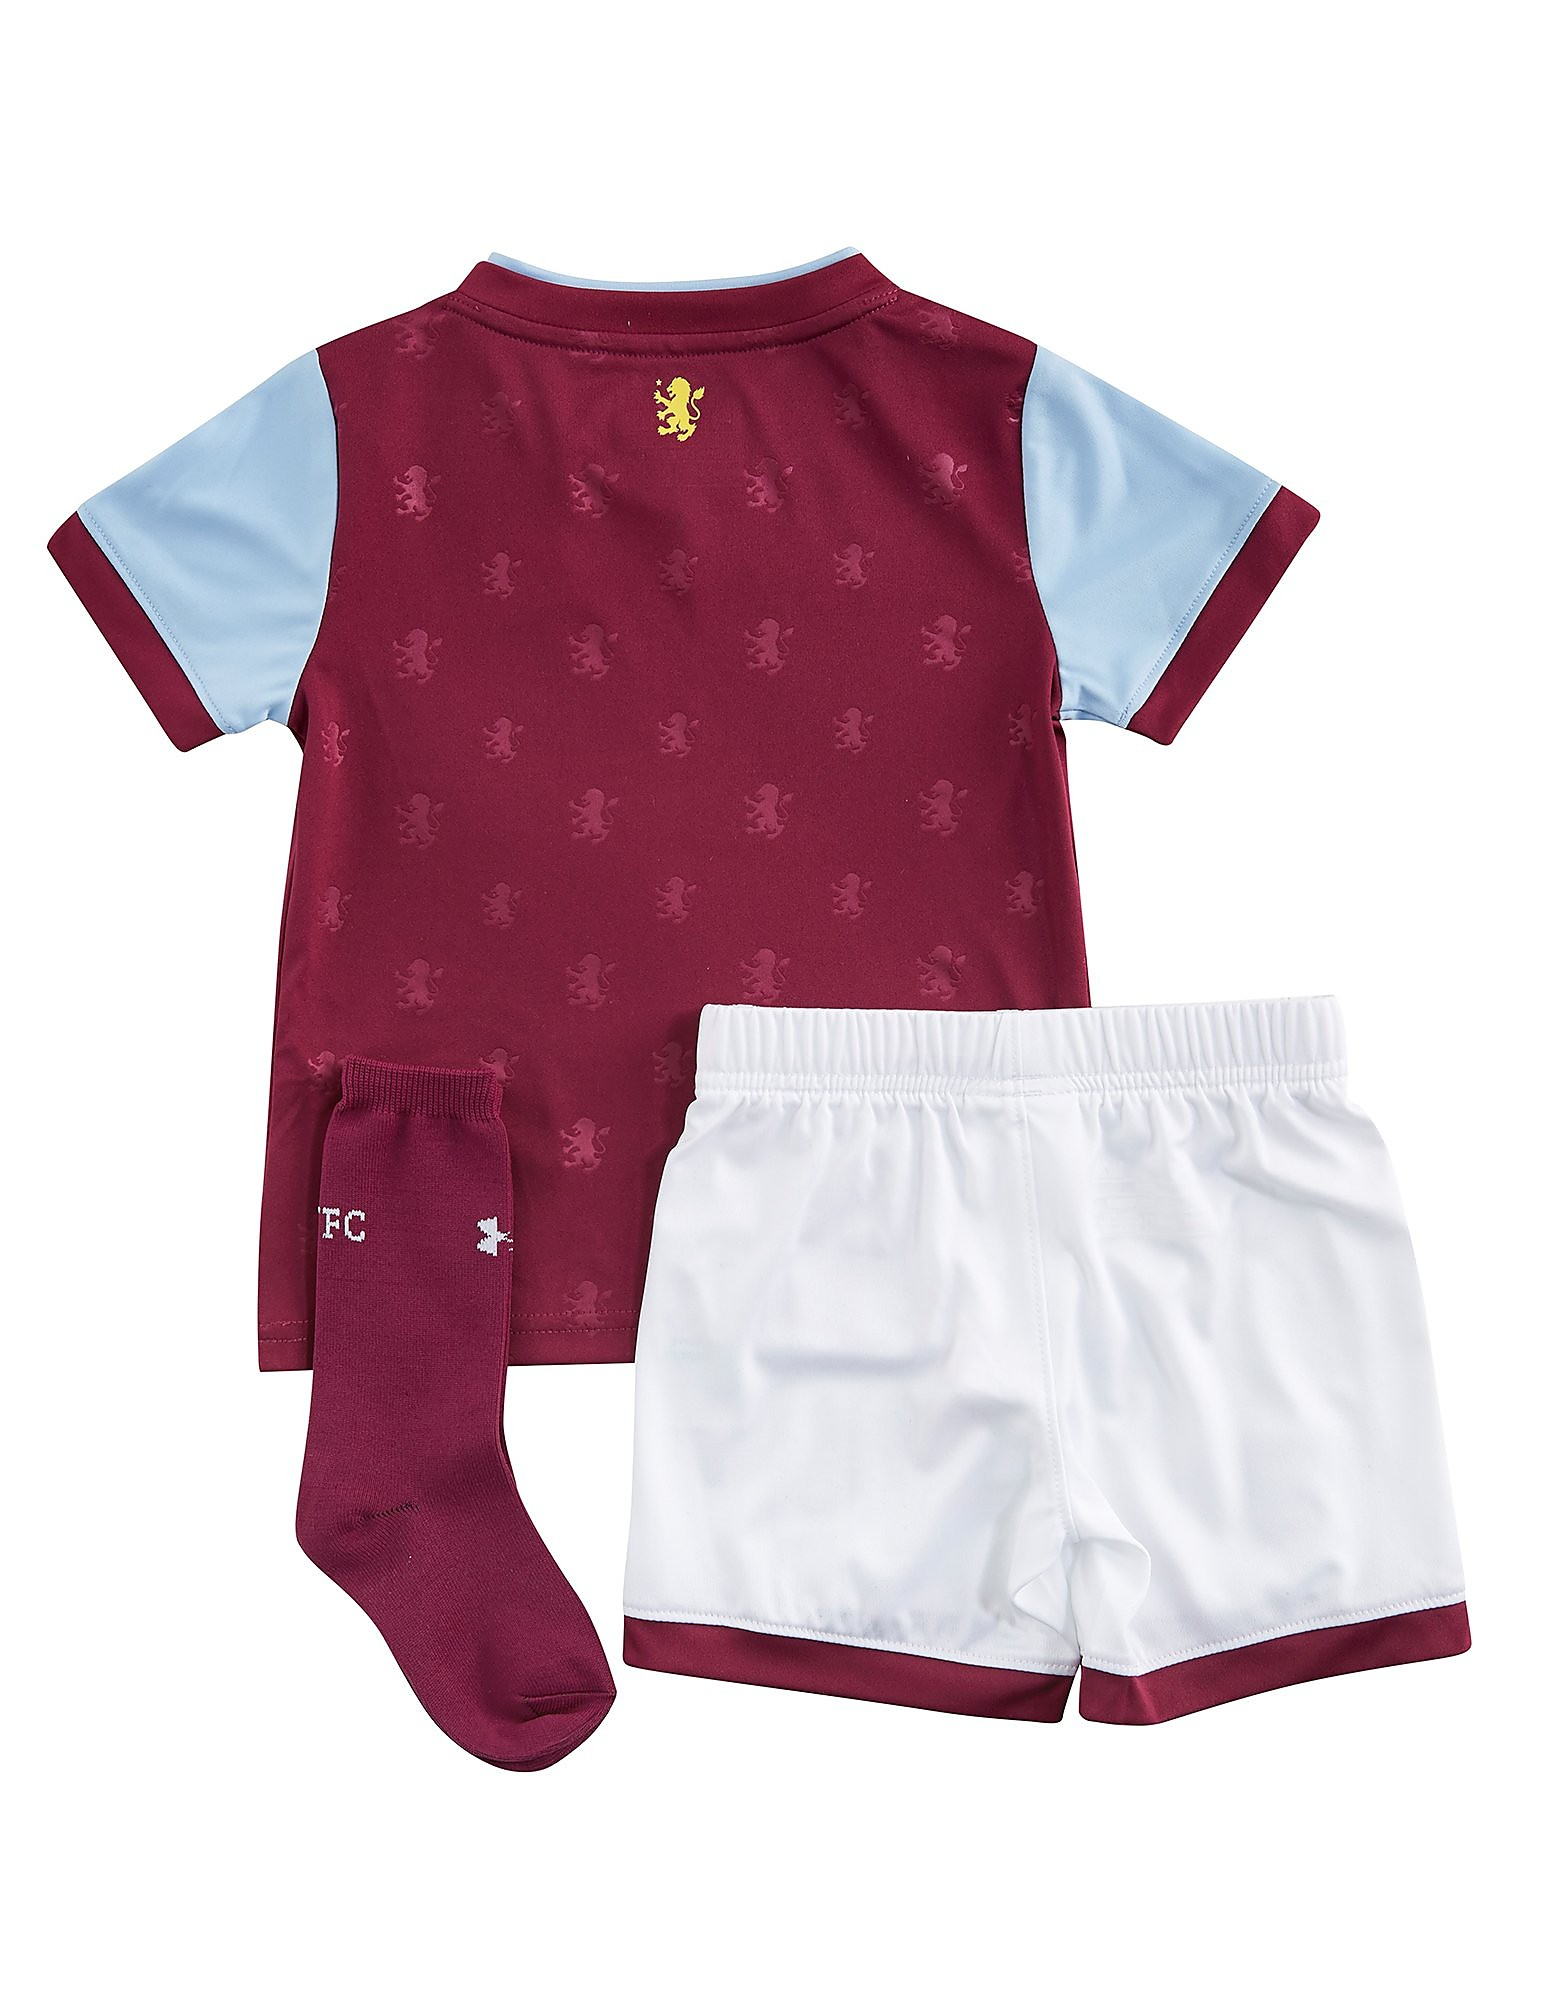 Under Armour Aston Villa 2017/18 Home Kit Infant